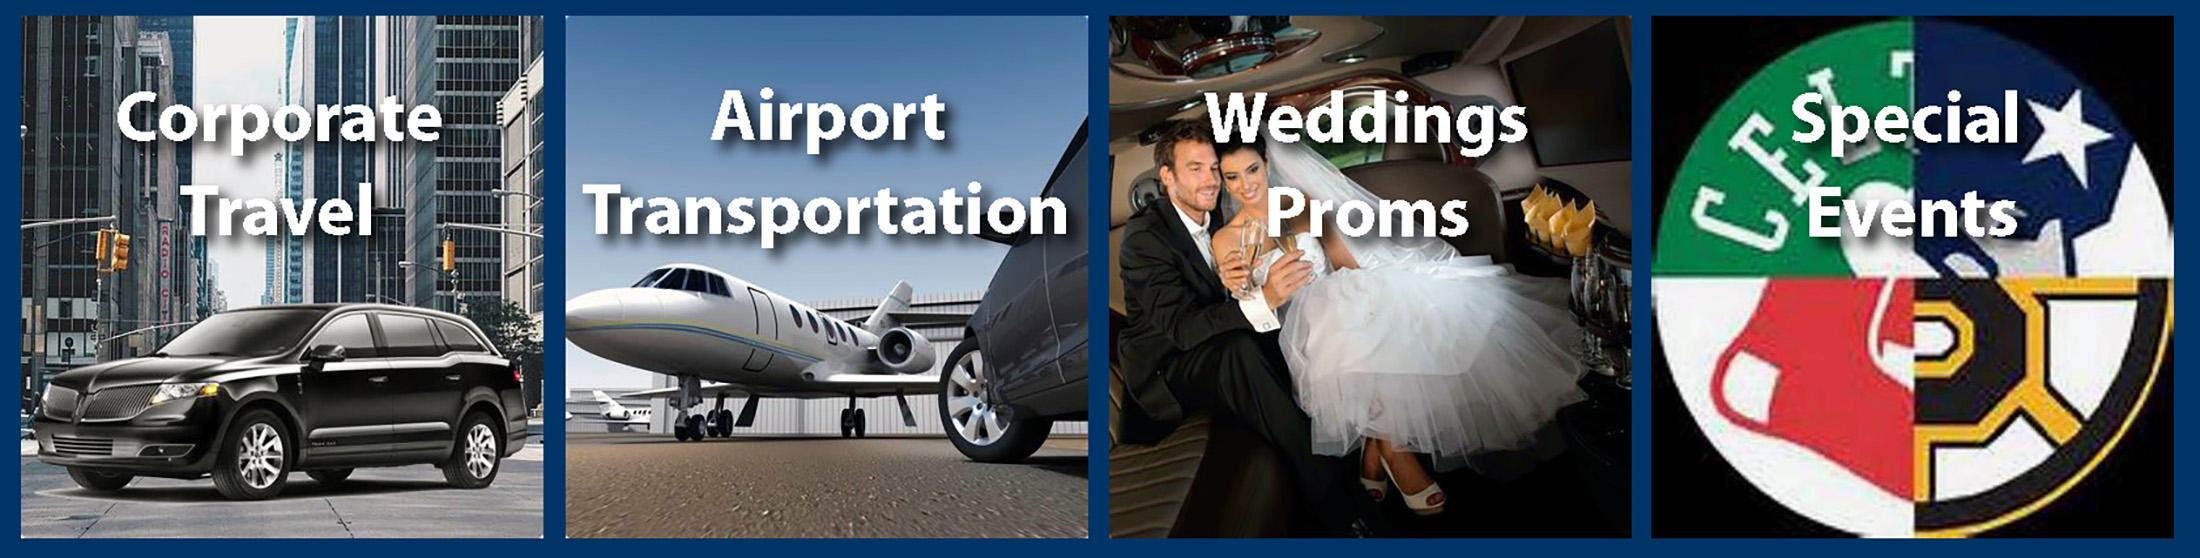 Above A;ll Transportation-4Up-CorporateTravel-AirportTransportation-WeddingsProms-SportingEvents-Concerrts